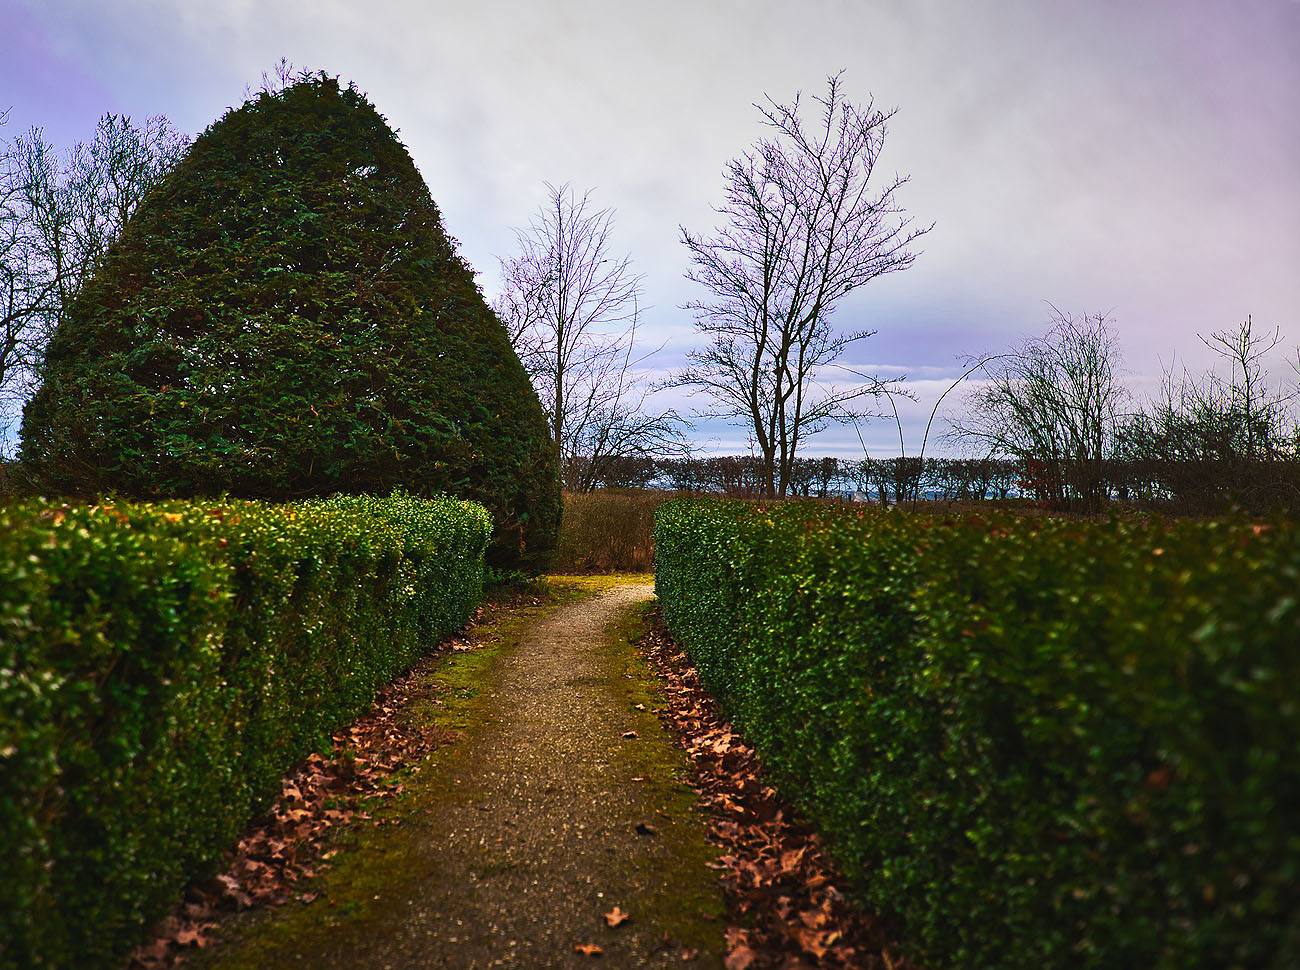 Hedge cutting we identify a cutting schedule for all hedges and follow it closely throughout the year. If a hedge is left for too long without cutting it will outgrow its shape and thereafter be very difficult to restore. We will replace any dead hedging when necessary.